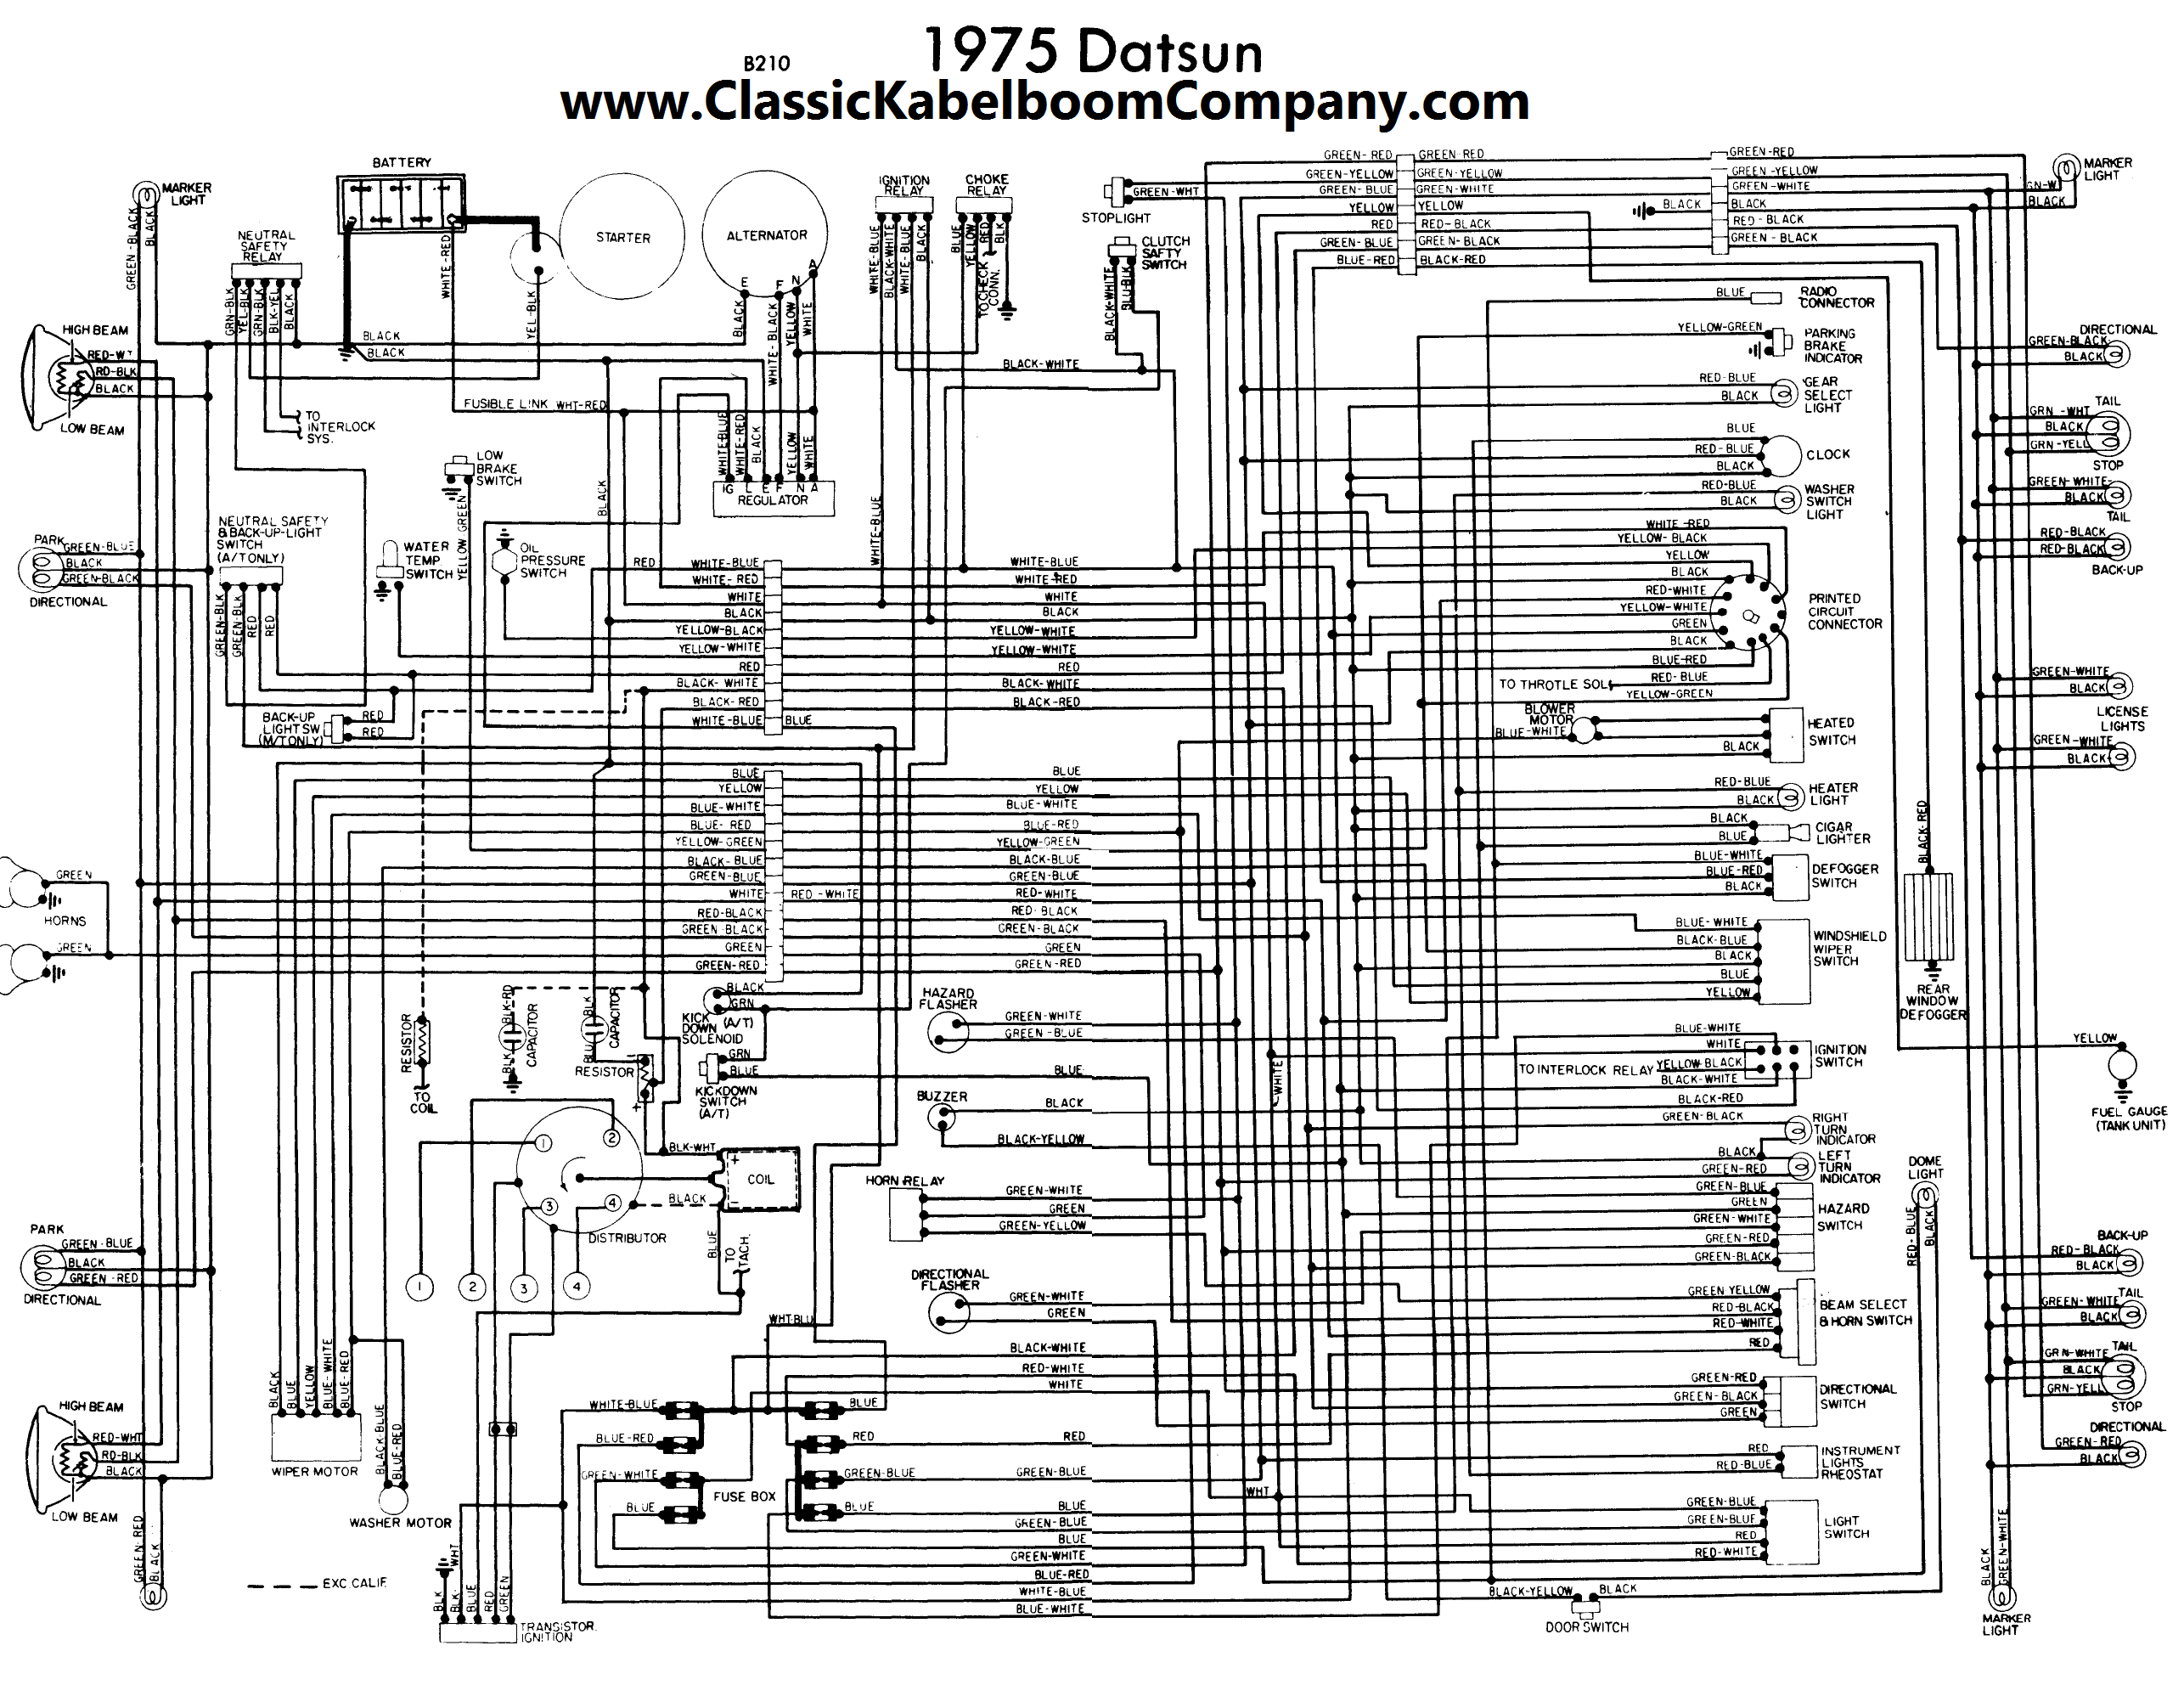 Beautiful Rmk Wiring Schematic Pictures - Electrical Diagram Ideas ...